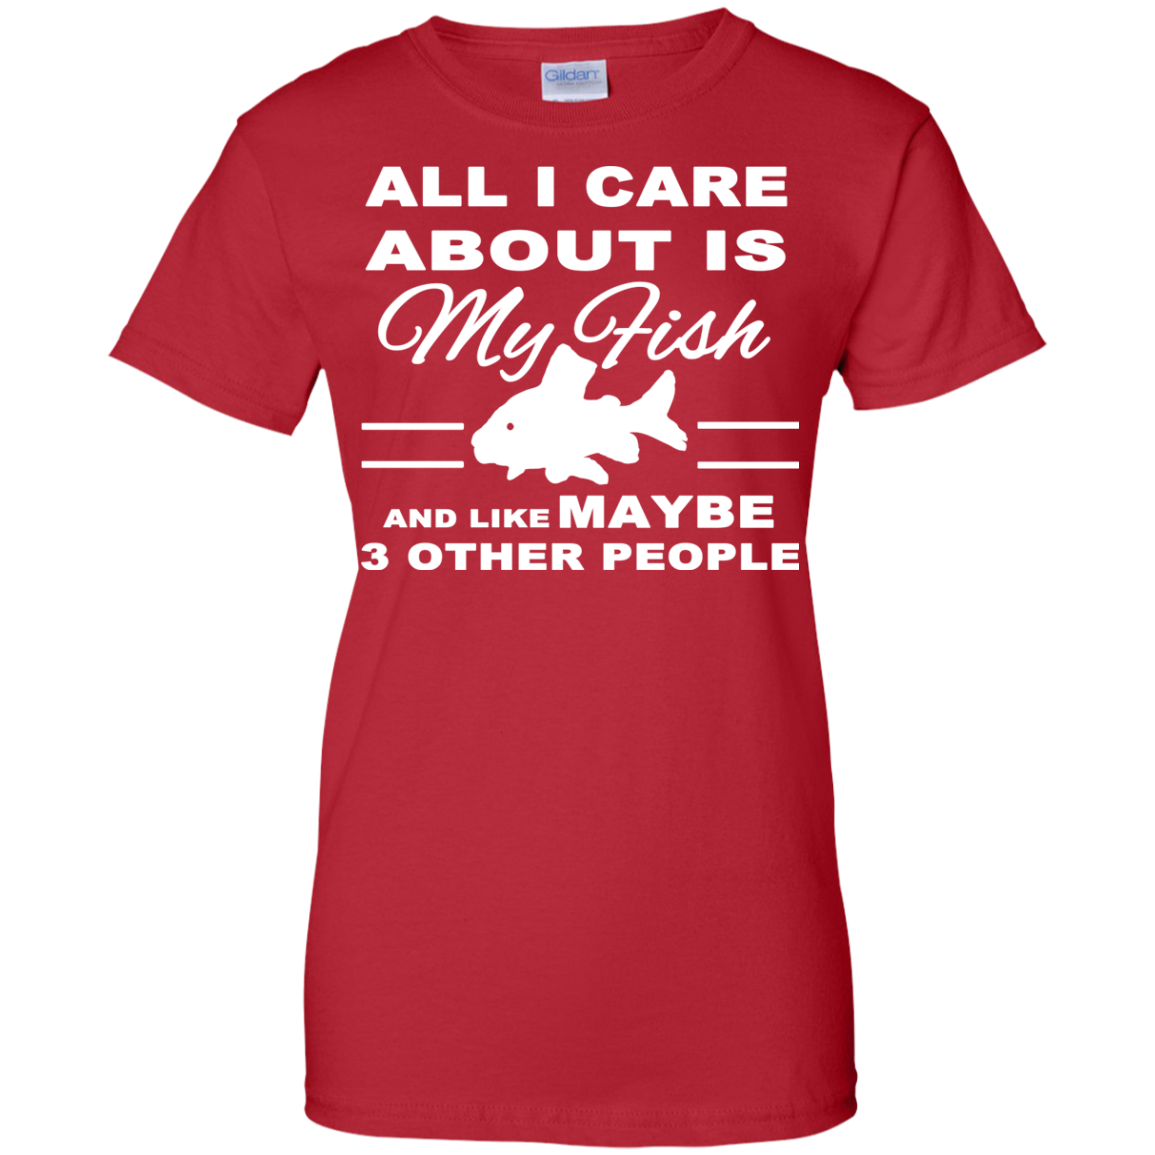 All I Care About Is My Fish And Like Maybe 3 Other People Ladies Tees